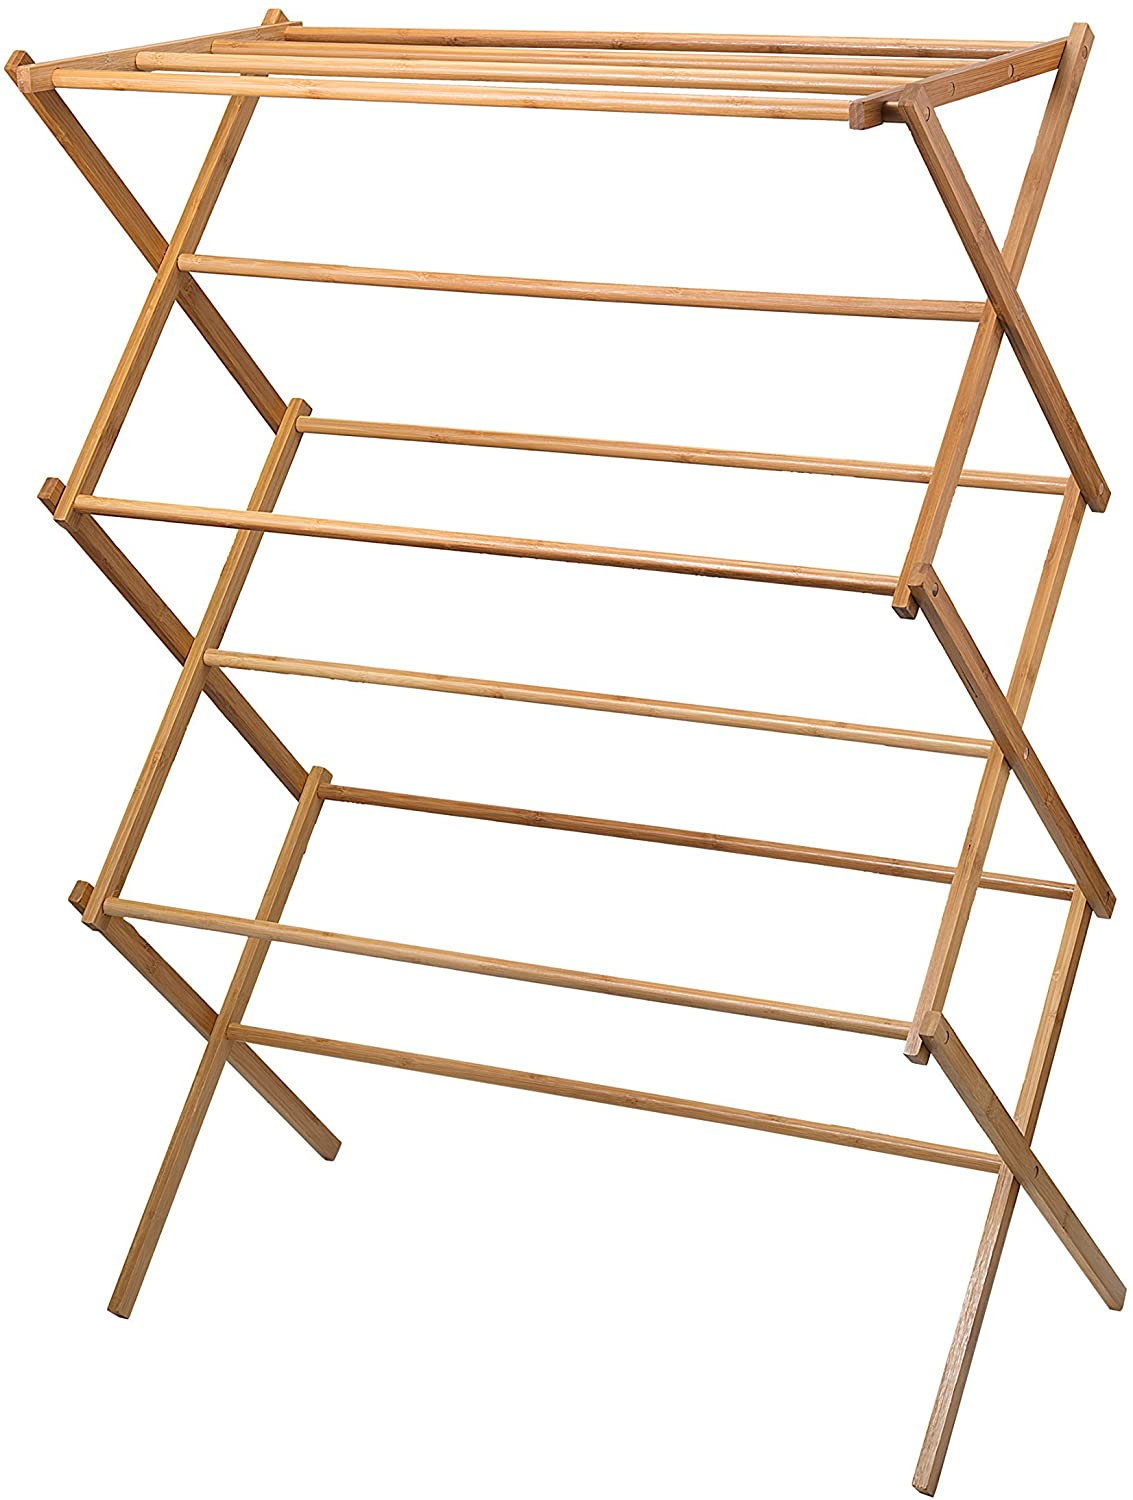 cresnel gullwing clothes drying rack